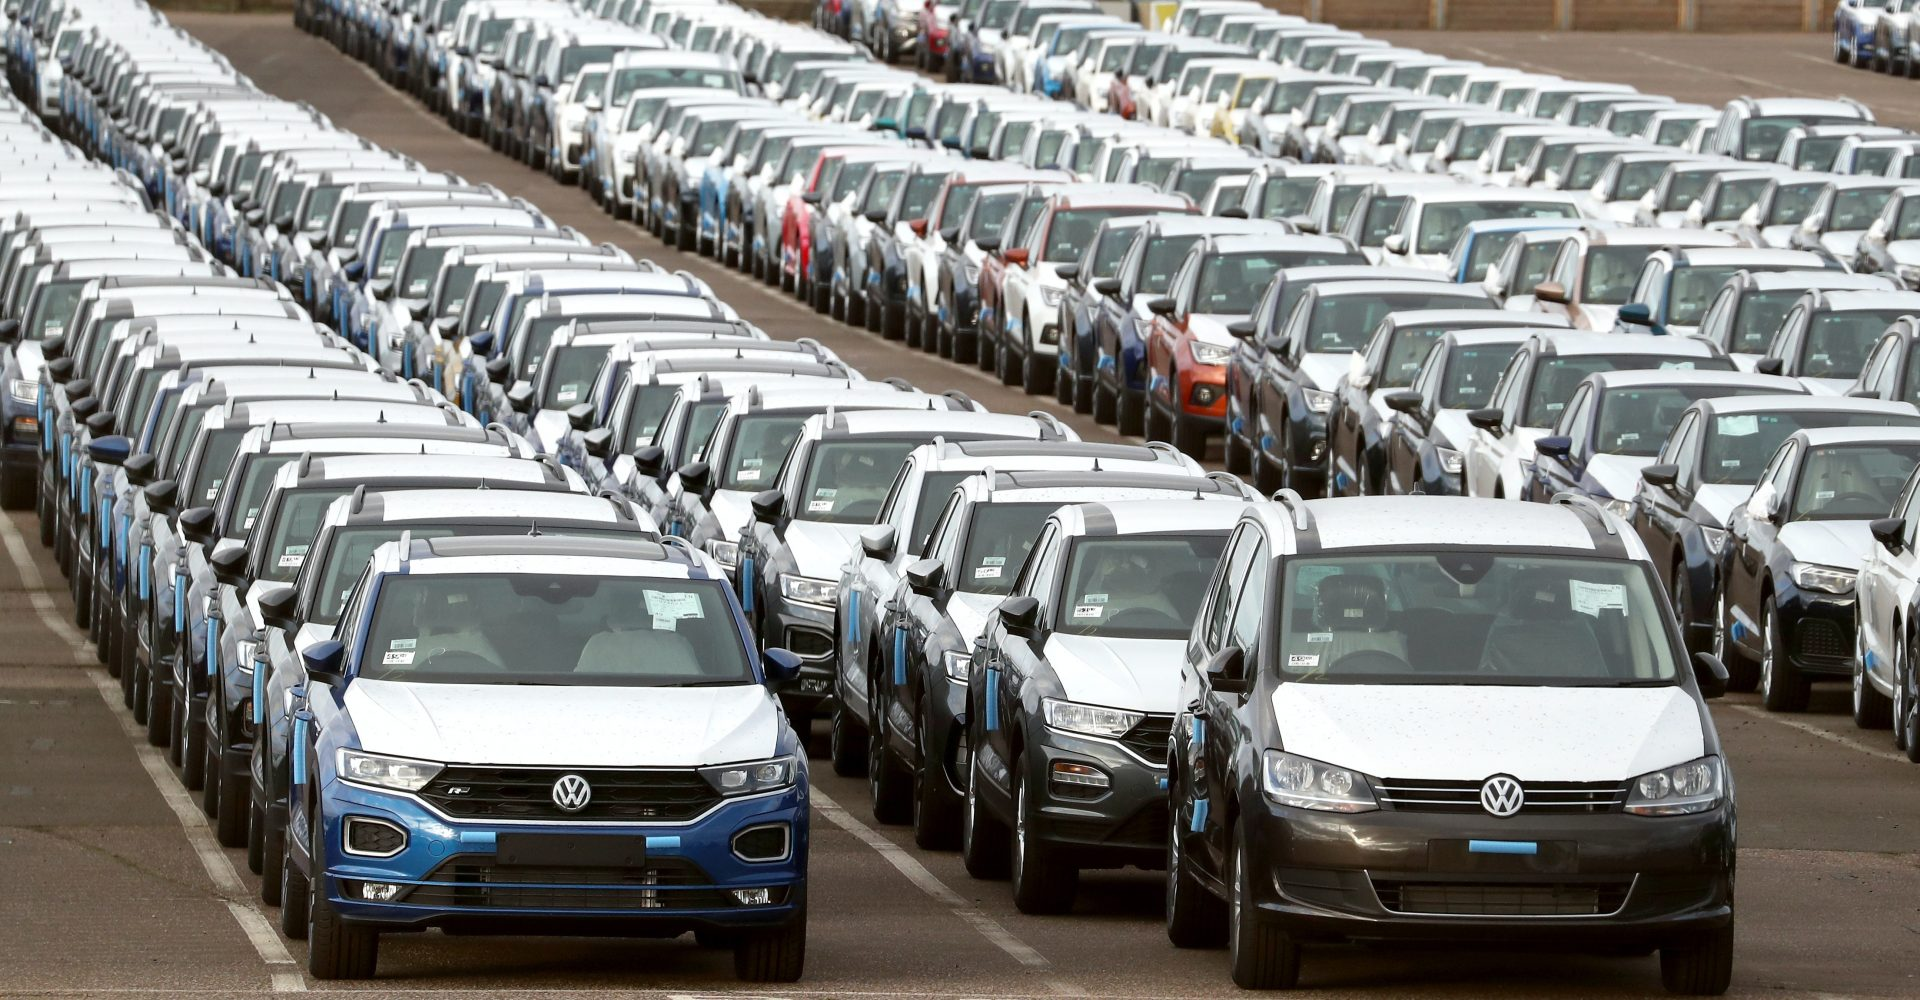 Is now the right time to buy a new car?